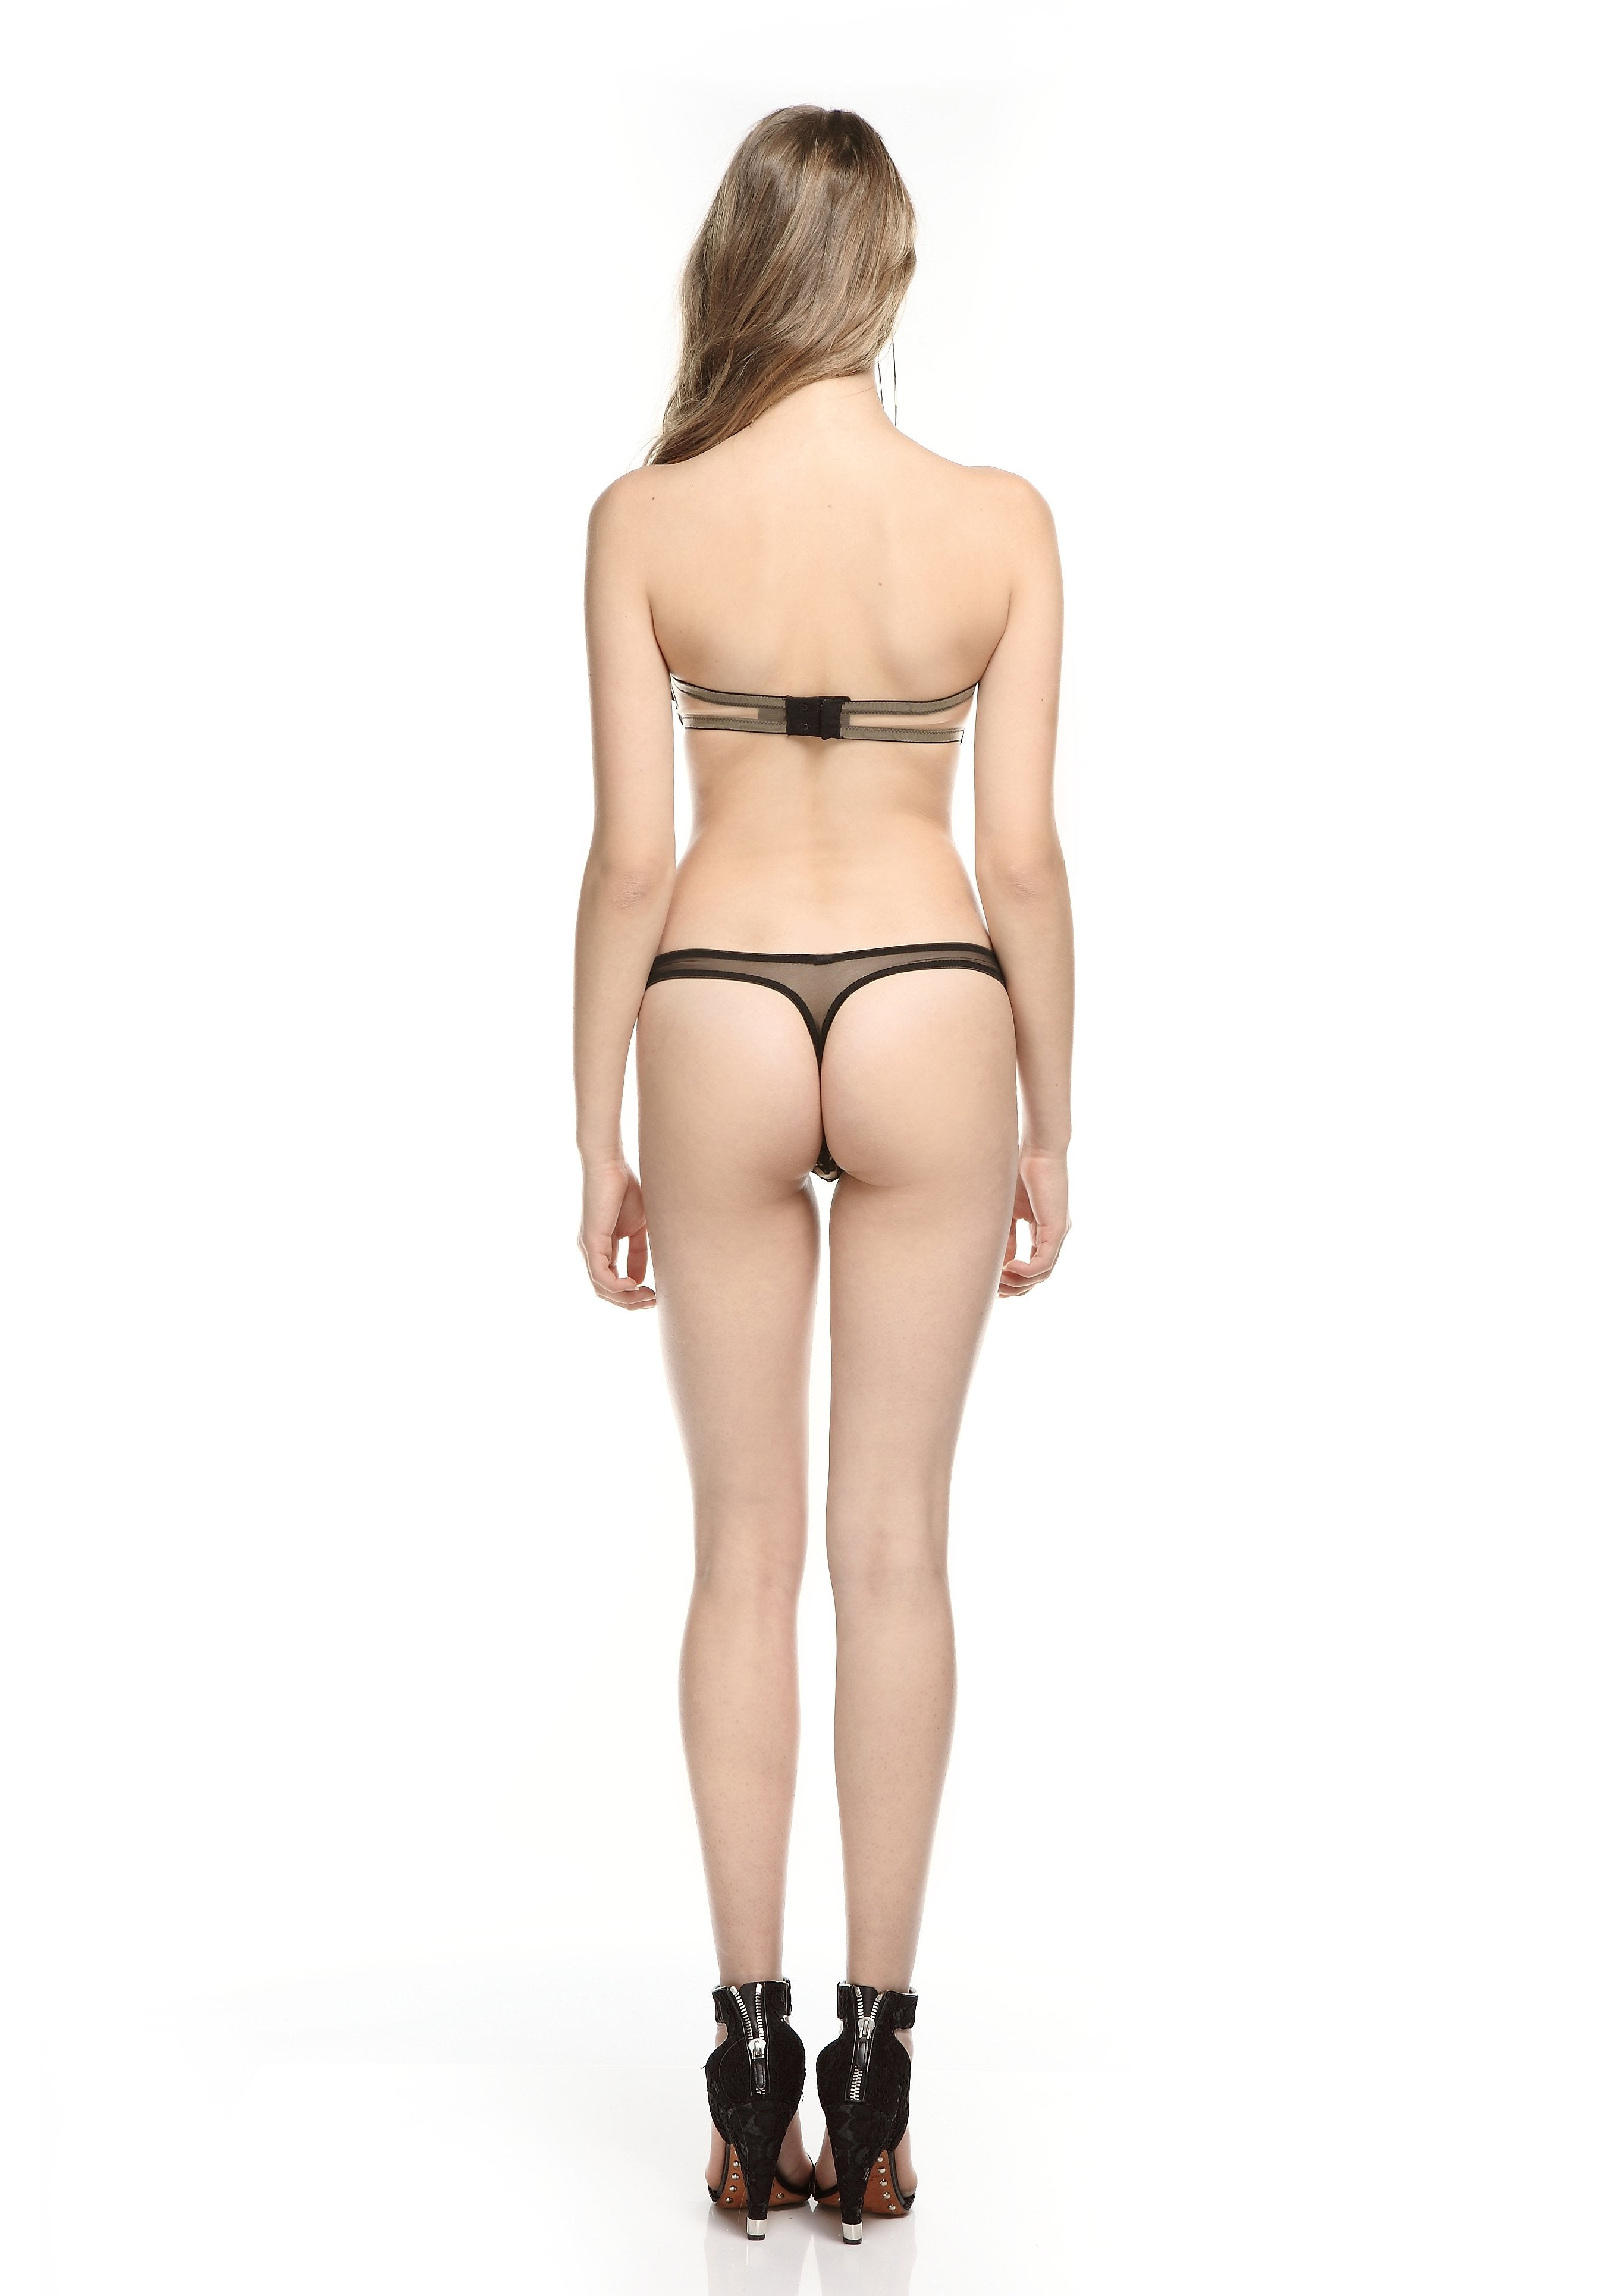 Fleur Interdit Thong in Skin/Black